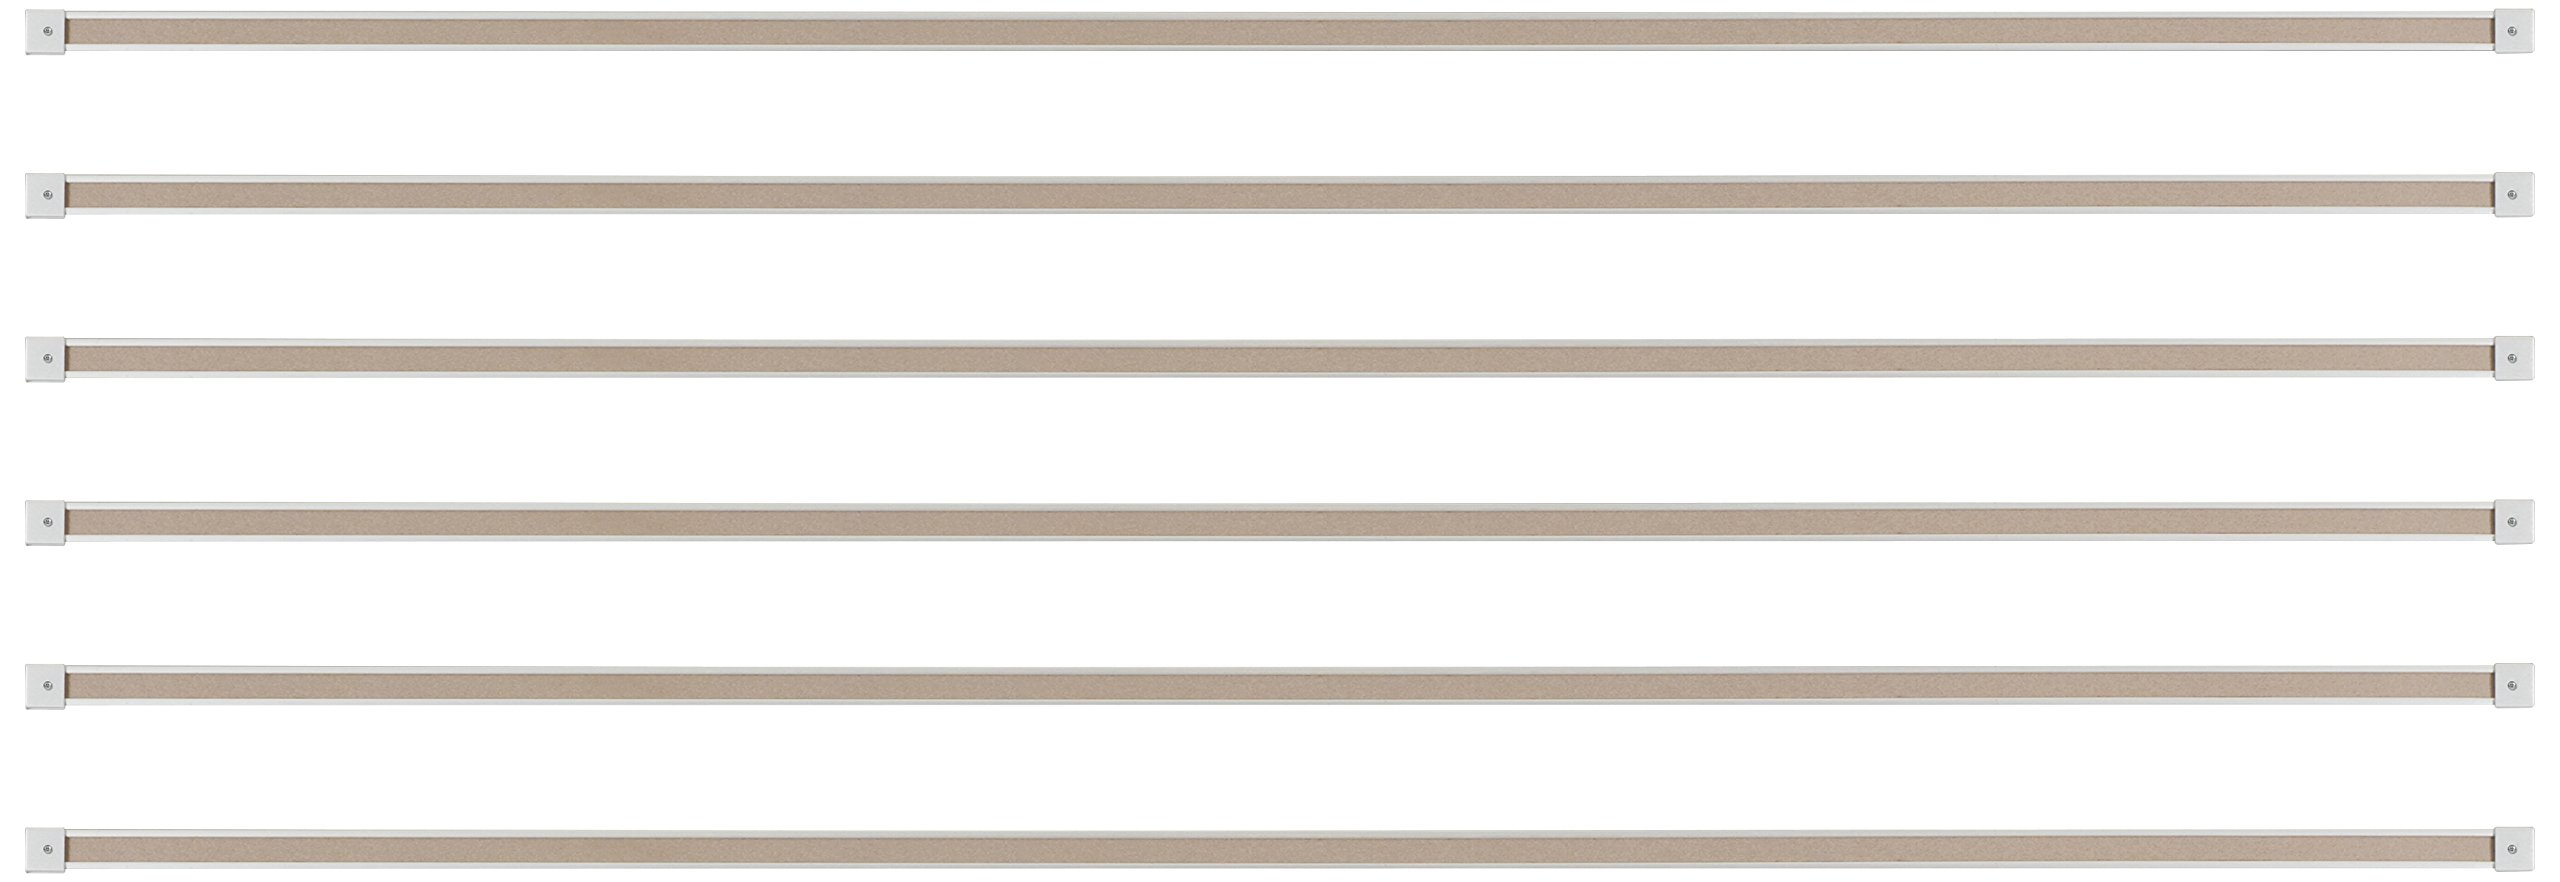 Best-Rite 1-Inch Map Rail, 6-Feet, Set of 6 (522G) by Best-Rite